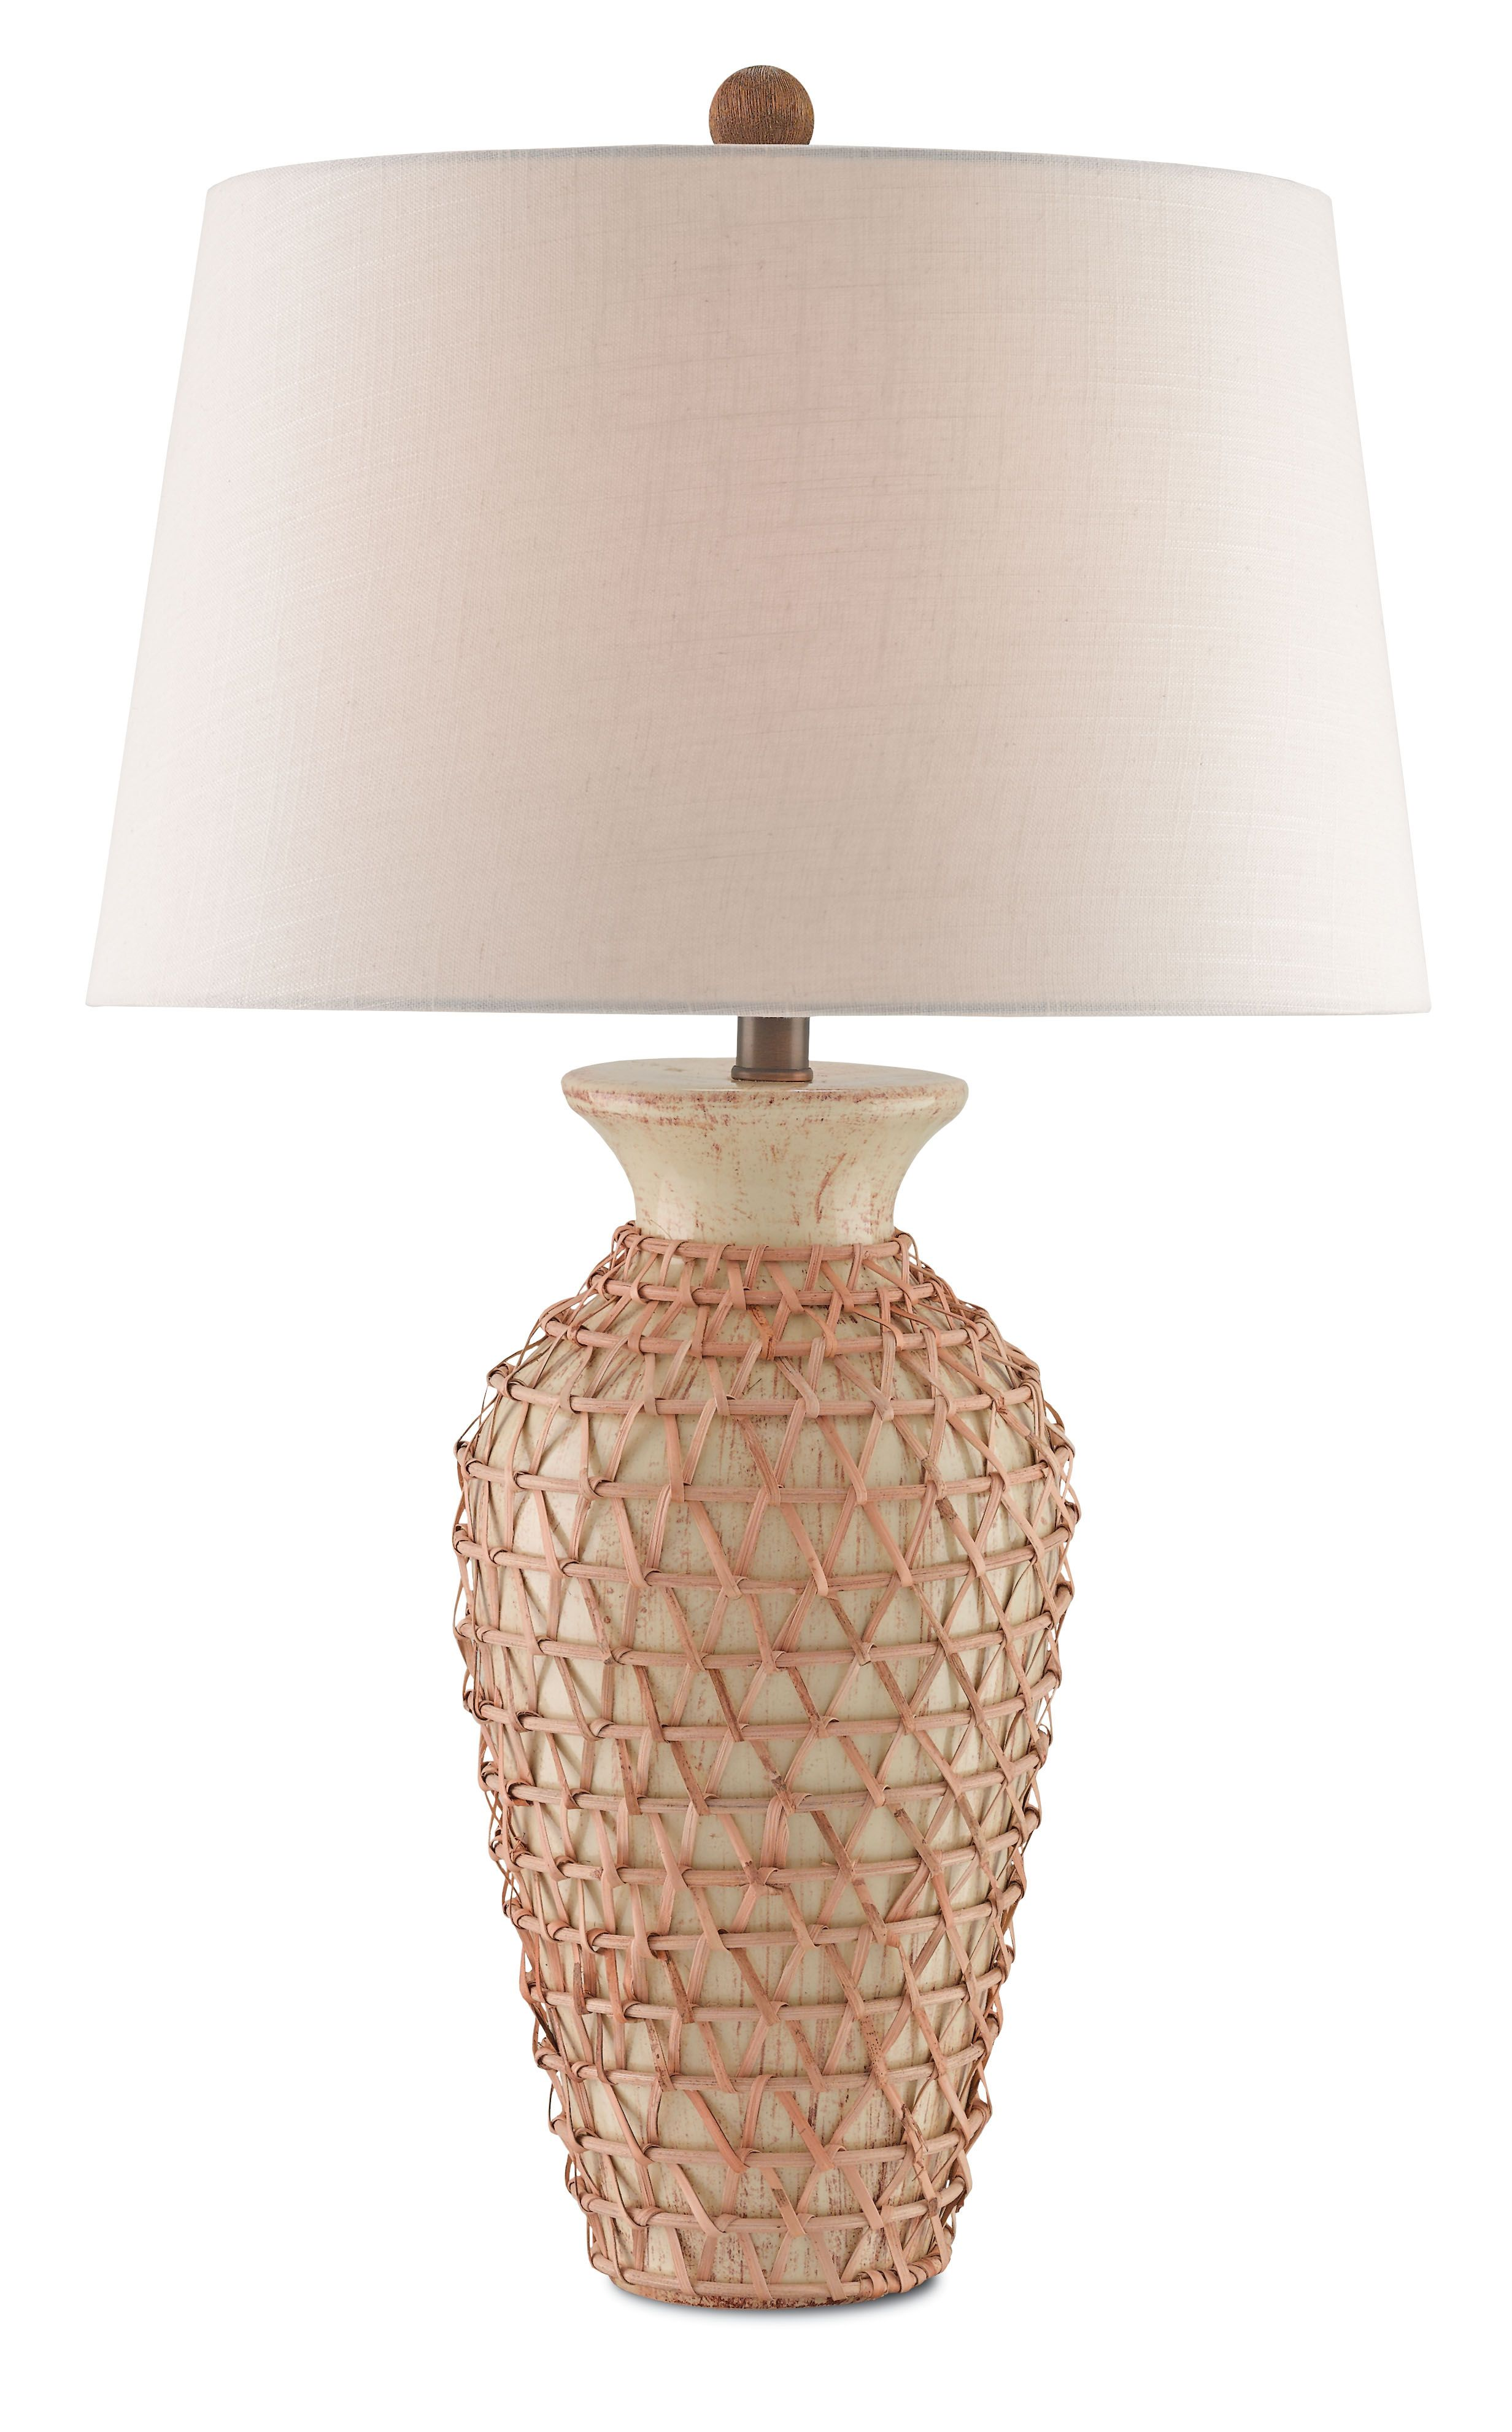 Currey Company Available At Robb Stucky Table Lamp Design Lamp Design Lamp